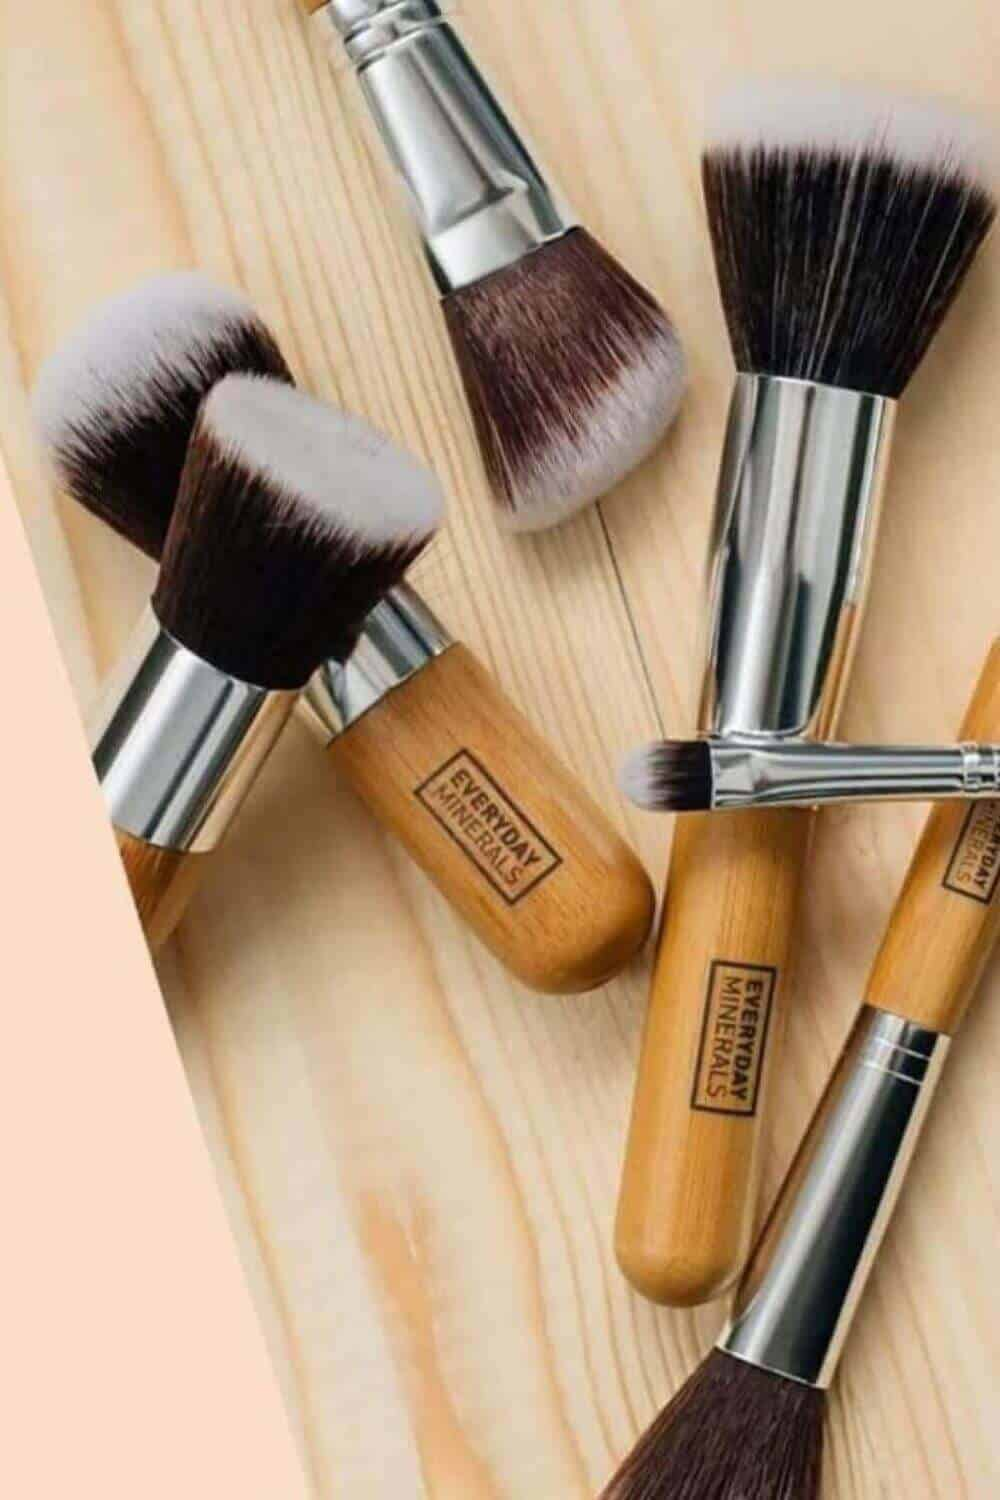 We've sought out the best cruelty free vegan makeup brushes to give you the tools (literally) to make your ENTIRE makeup routine absent the animals. Image by Everyday Minerals #veganmakeupbrushes #sustainablejungle